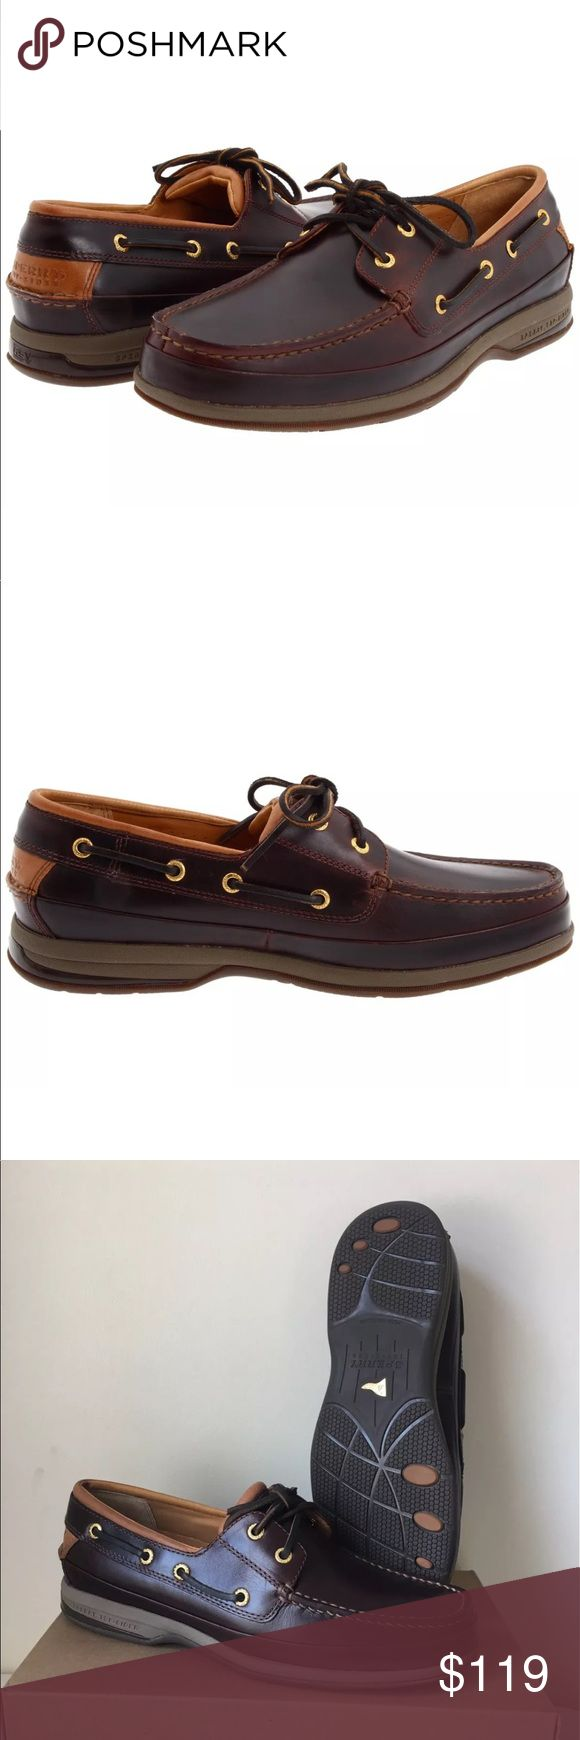 SPERRY GOLD CUP ASV 2 EYE BOAT SHOE AMARETTO MENS Sperry Gold Cup Boat Shoe ASV Amaretto  $179 new in box no lid on box perfect condition except for one tiny mark on Leather on top of shoe see photo  A hand-sewn boat shoe is fully lined with genuine lamb skin for ultrasoft comfort while a nonmarking rubber sole is wave-siped for ultimate wet-dry traction. The Gold Cup Collection takes the inimitable Sperry style to the next level with hand-burnished leathers, meticulous design & 18K…